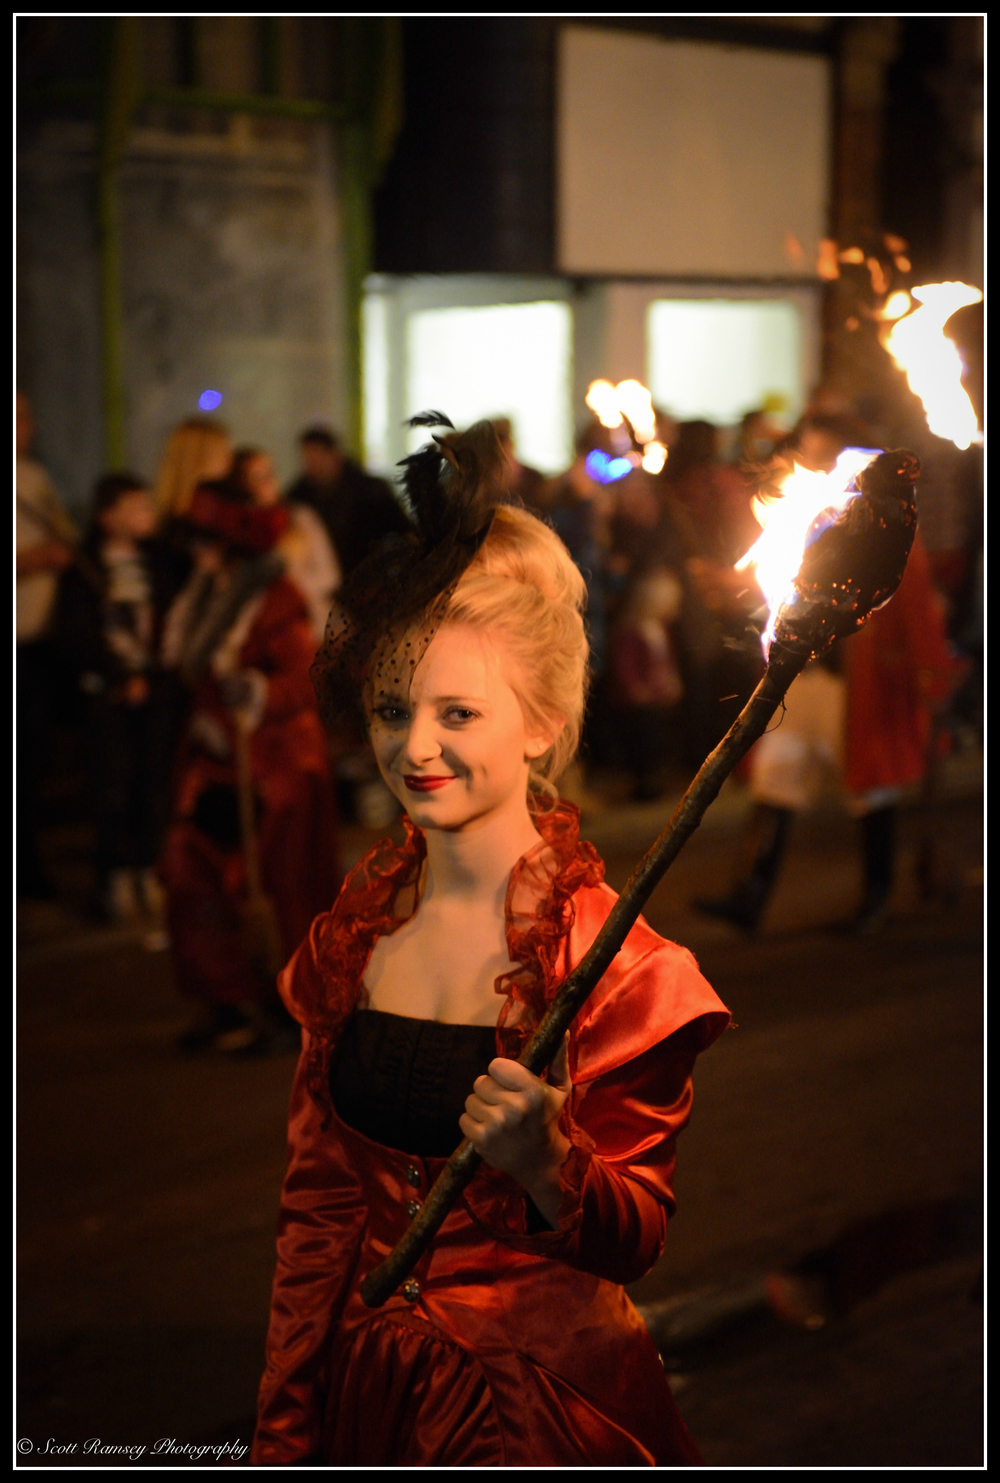 Holding a flaming torch whilst walking through the streets of Littlehampton a member of a bonfire society takes part in the torchlight procession.